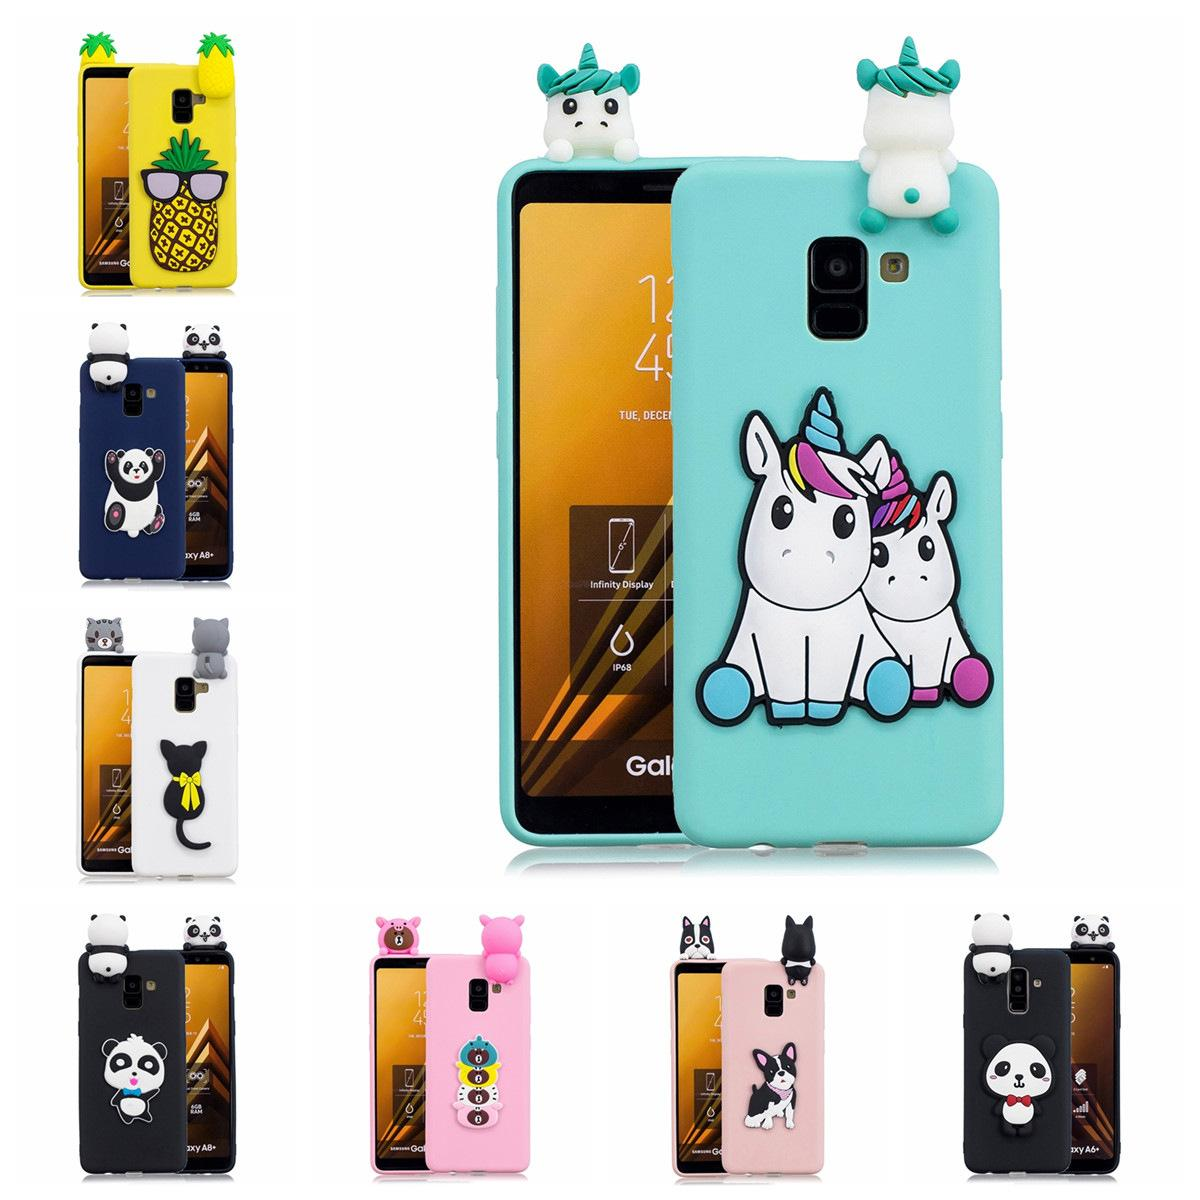 071db48a7 For Samsung Galaxy A8 2018 Case Cover Pasted 3D Funny Panda Dog Cat  Pineapple Sticking A Little Silicon Doll 61 Models Option Unique Cell Phone  Cases Cool ...